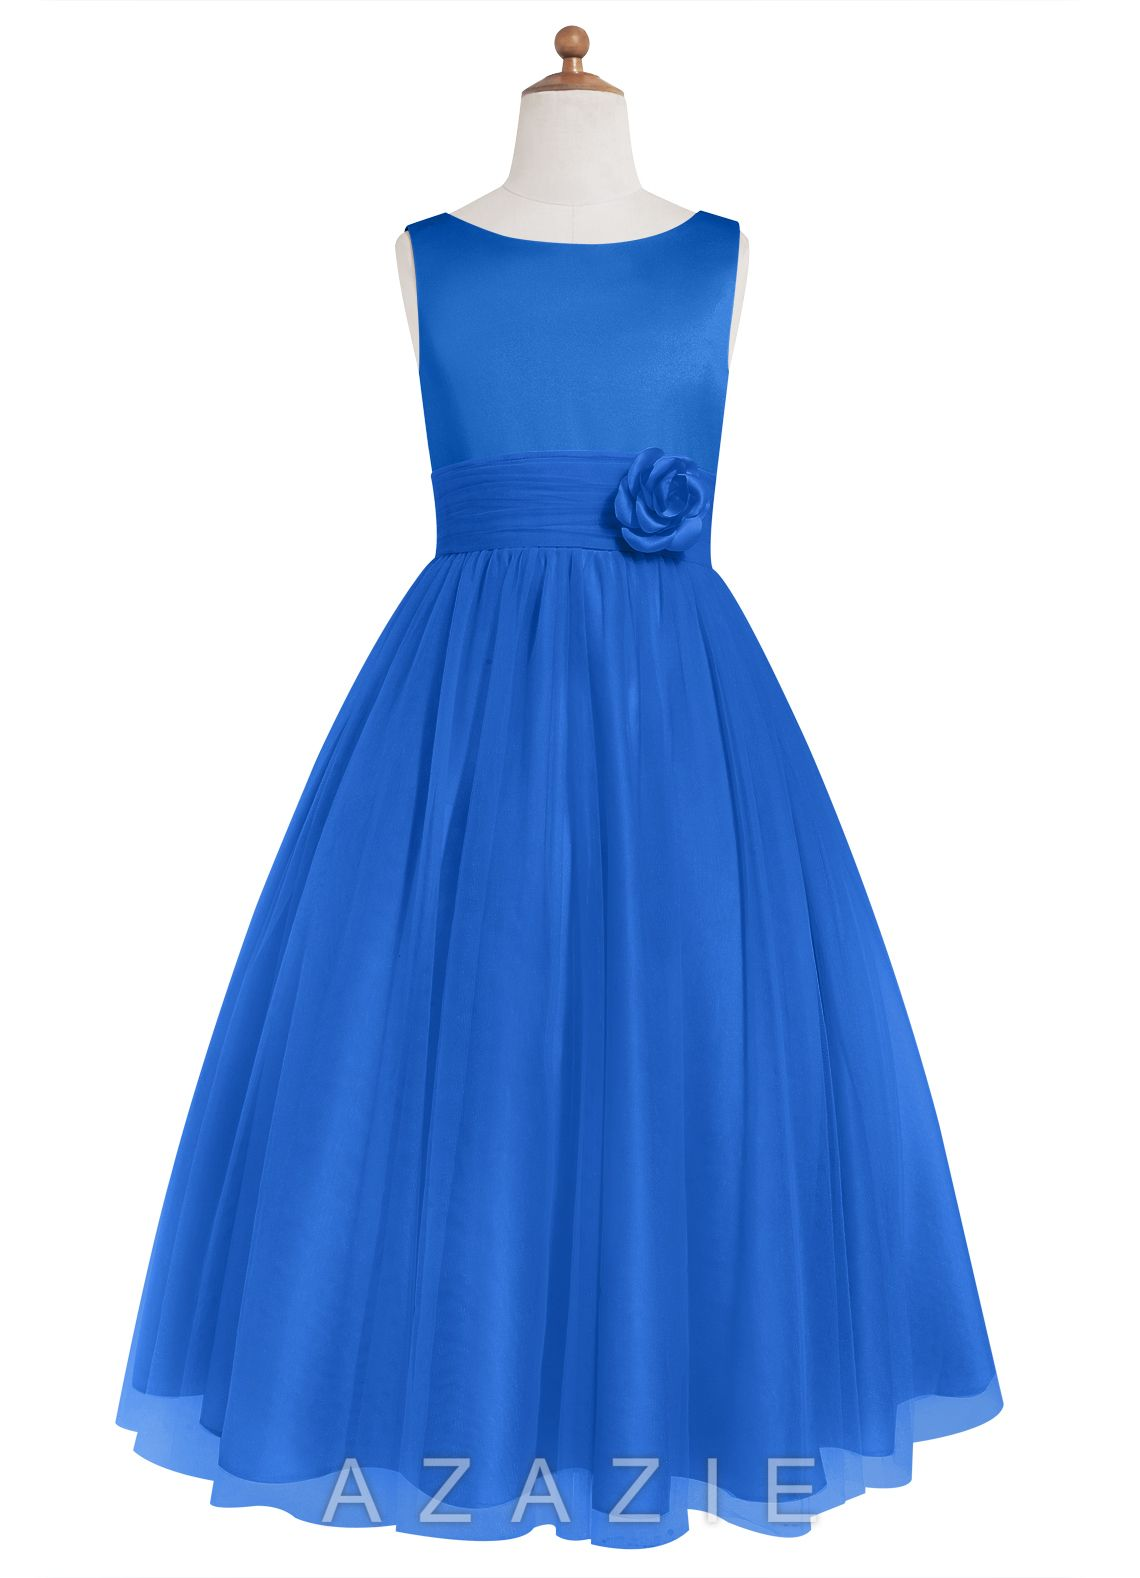 Azazie rudy jbd style rudy jbd by azazie is a tea length a line style rudy jbd by azazie is a tea length a lineprincess bridesmaid dress in an elegant satin and tulle ombrellifo Images